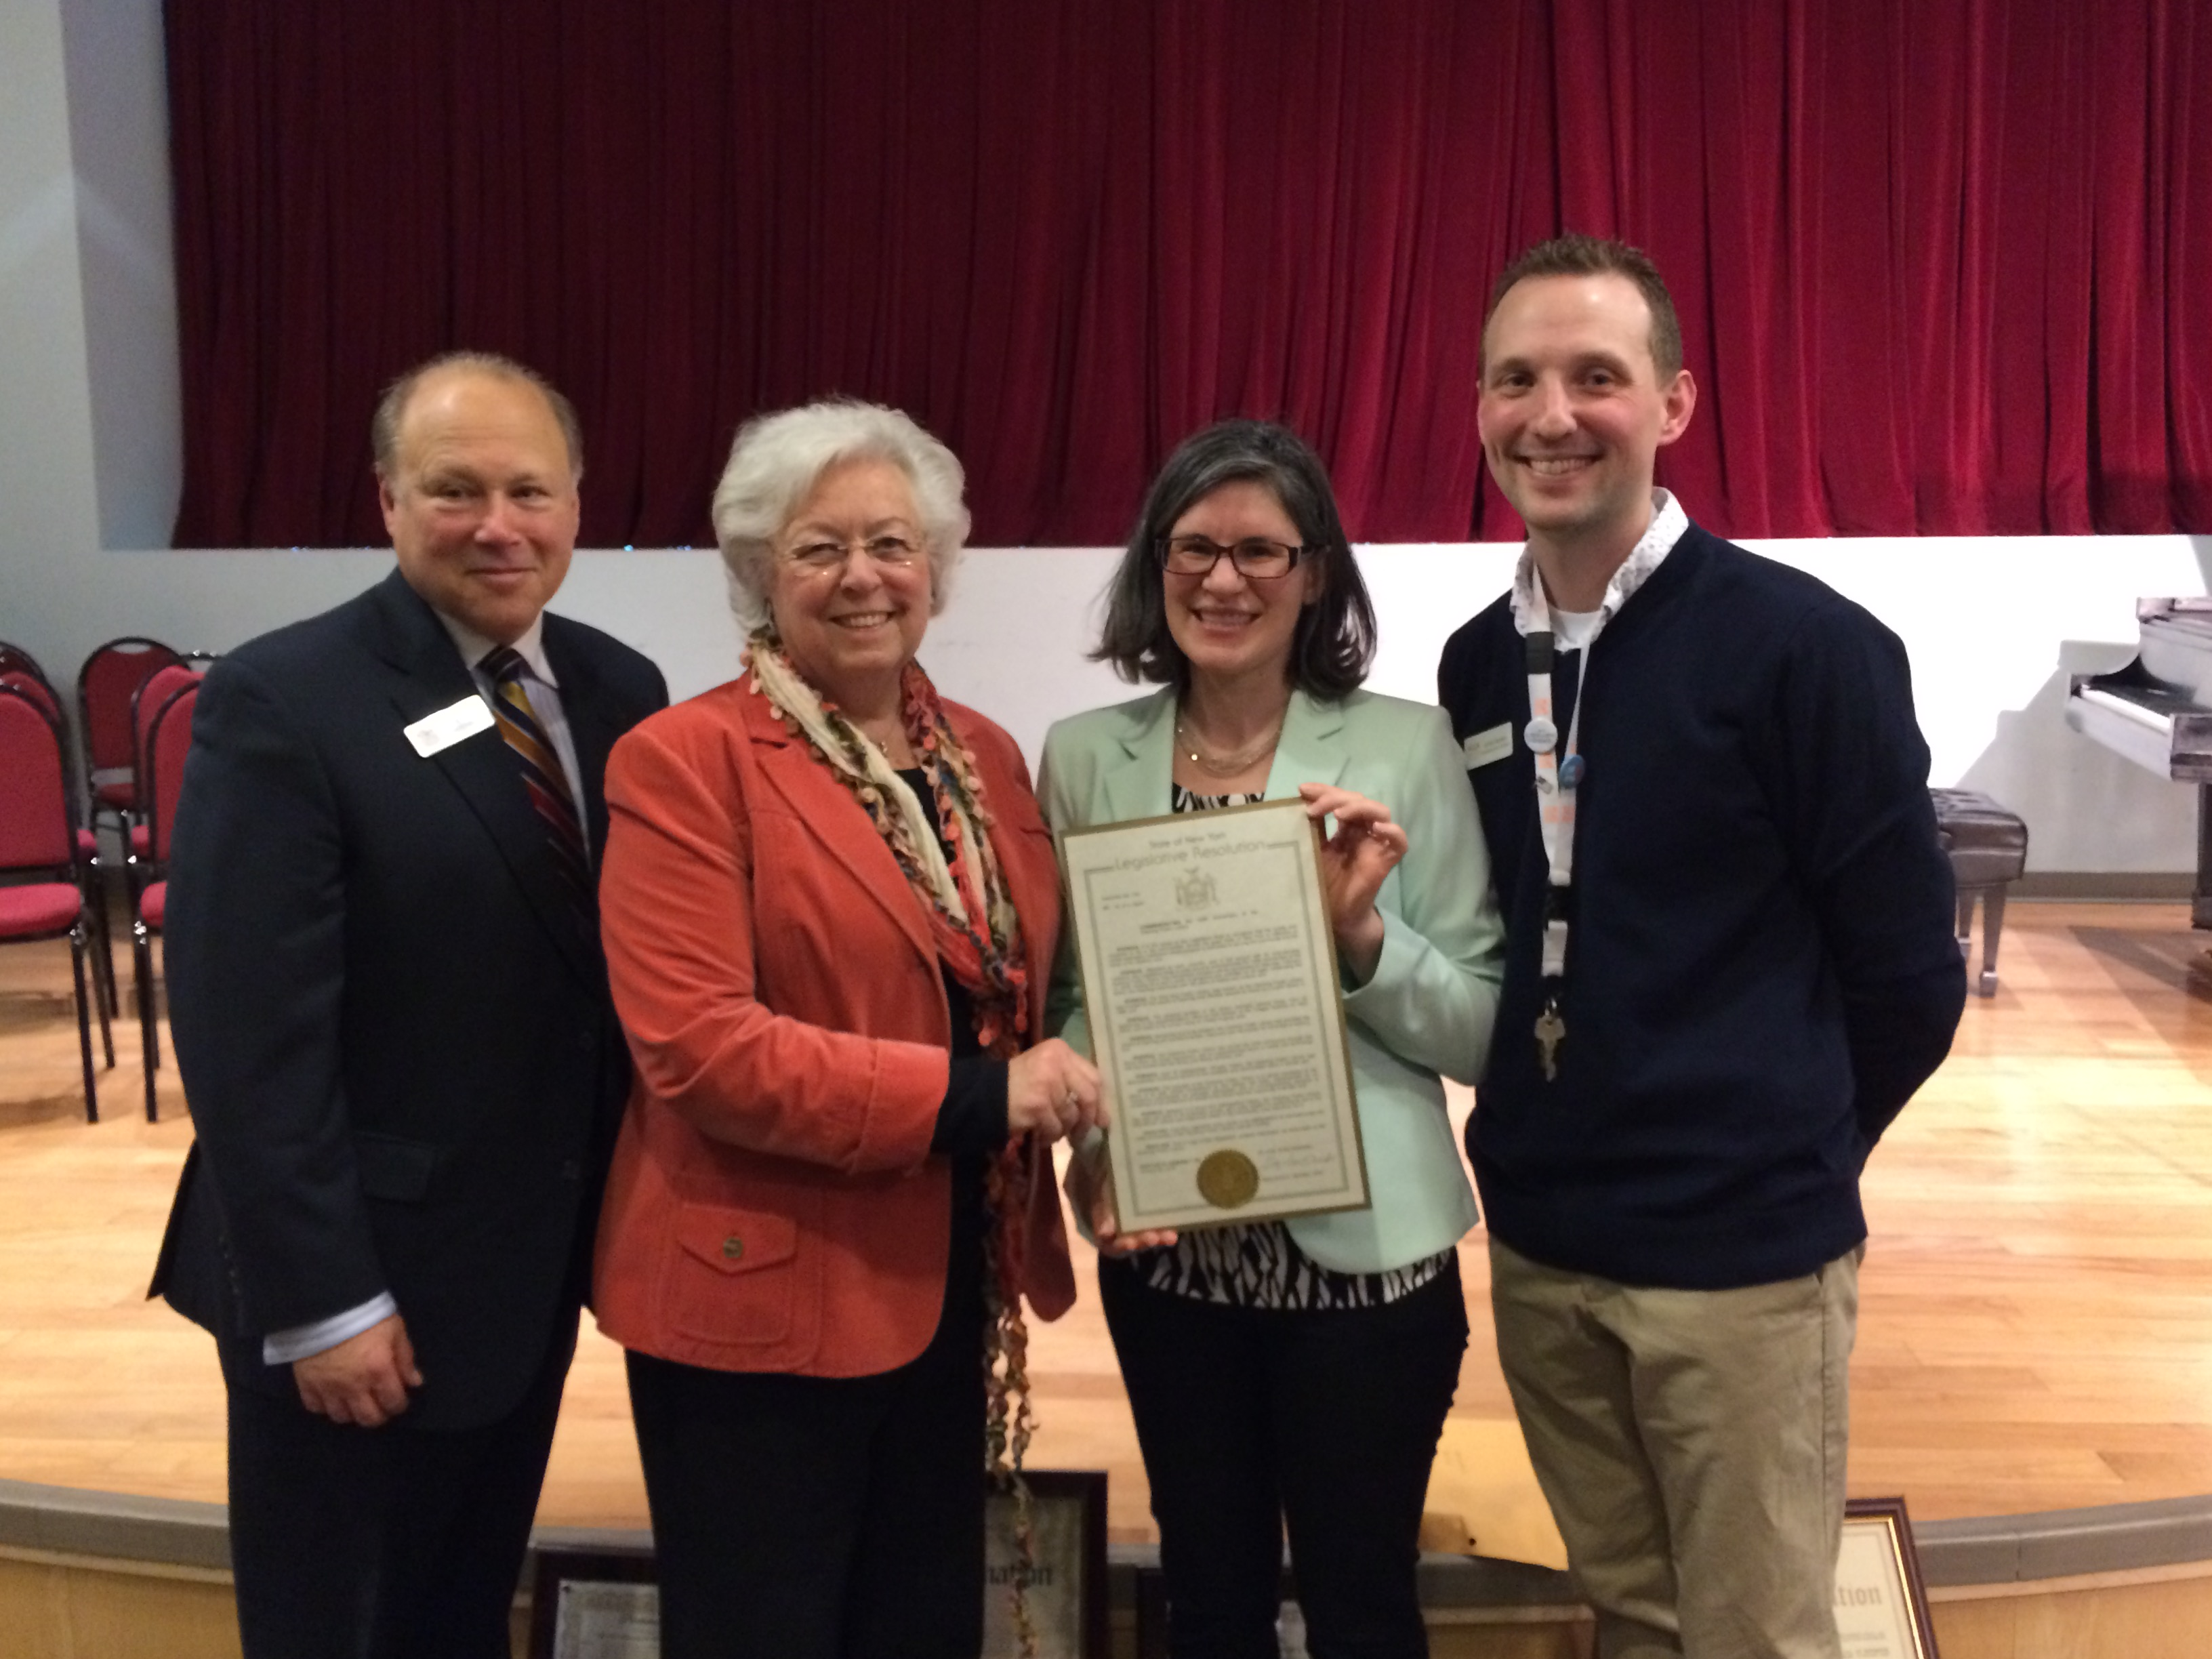 Ossining Public Library recently celebrated its 125th anniversary of serving Ossining. Sandy presented the library with a citation in honor of its dedicated provision of community services.